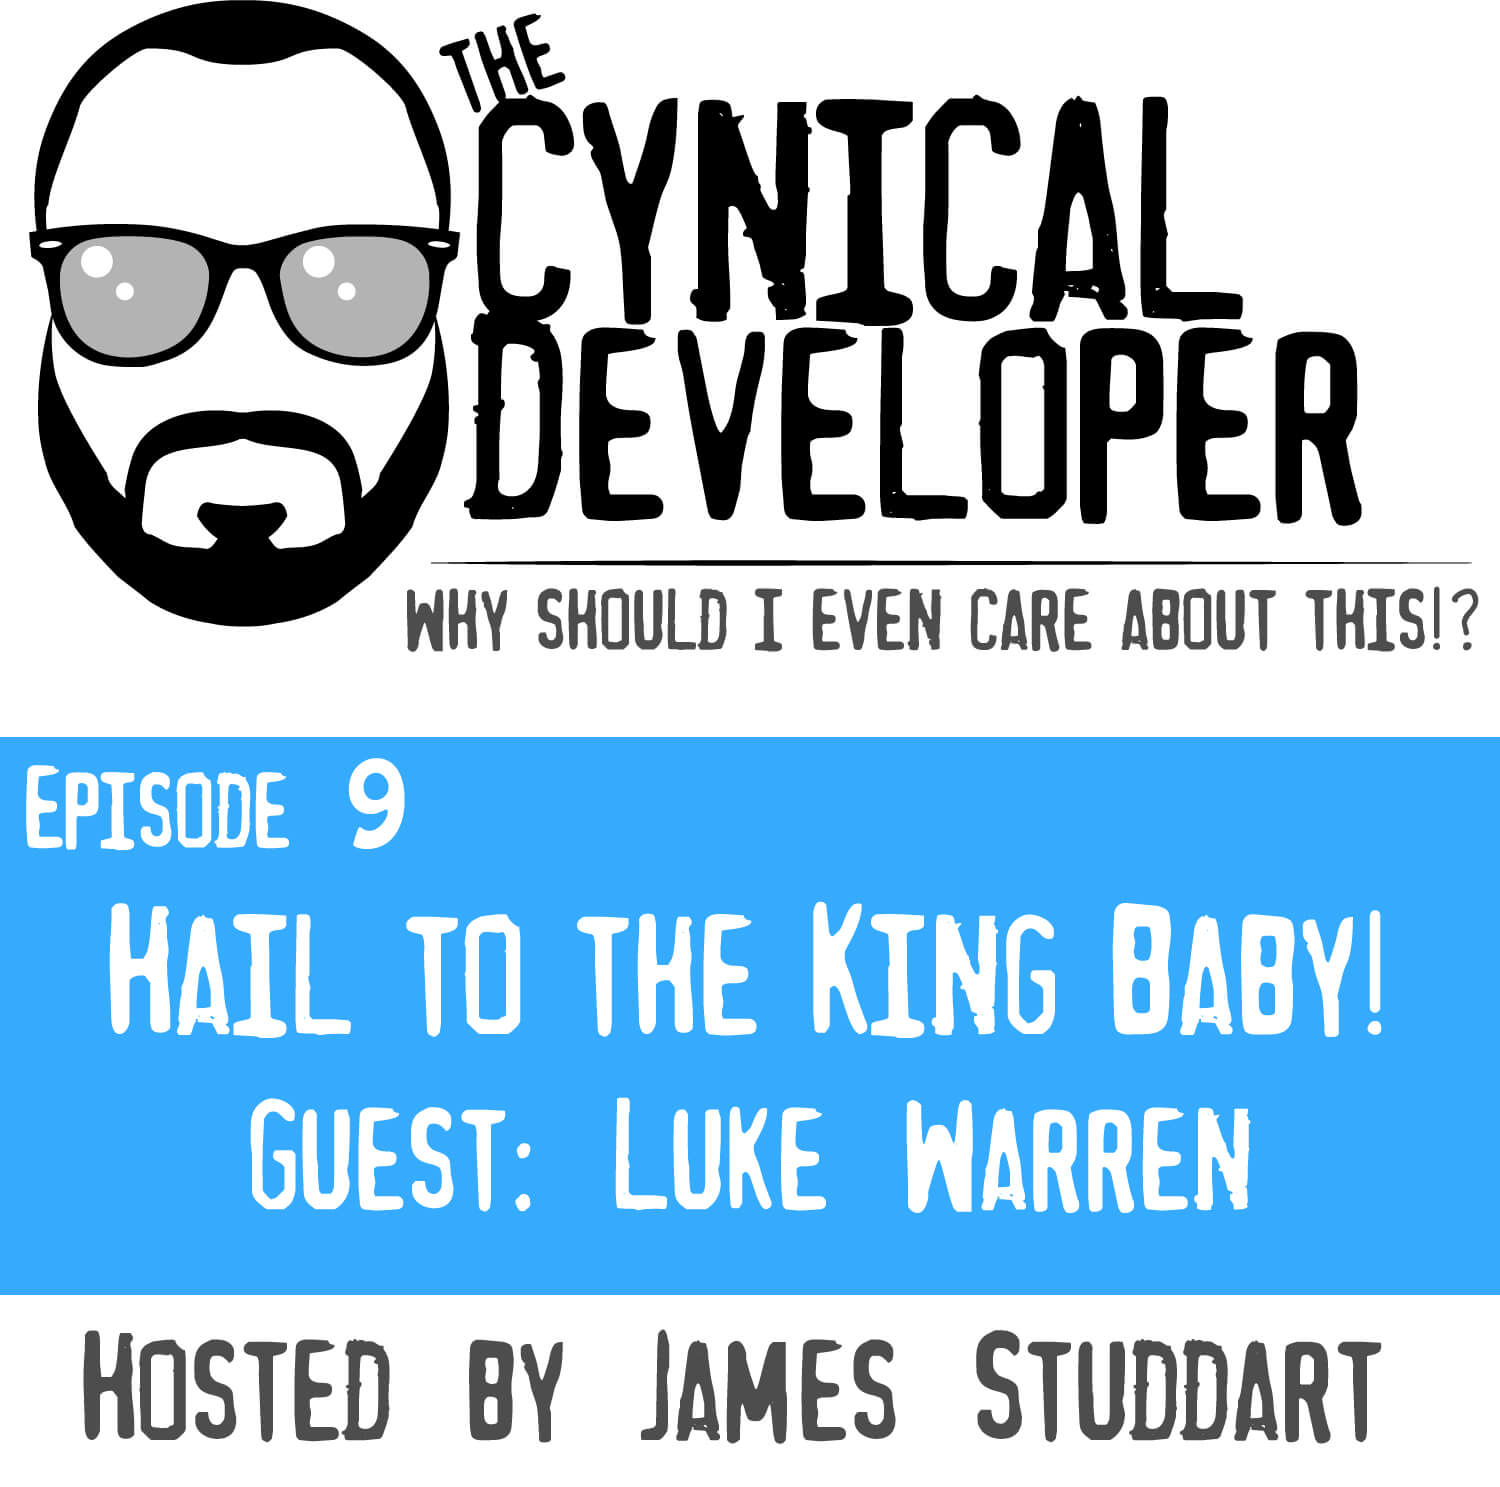 Episode 9 - Hail to the king, baby, with DotNetNuke